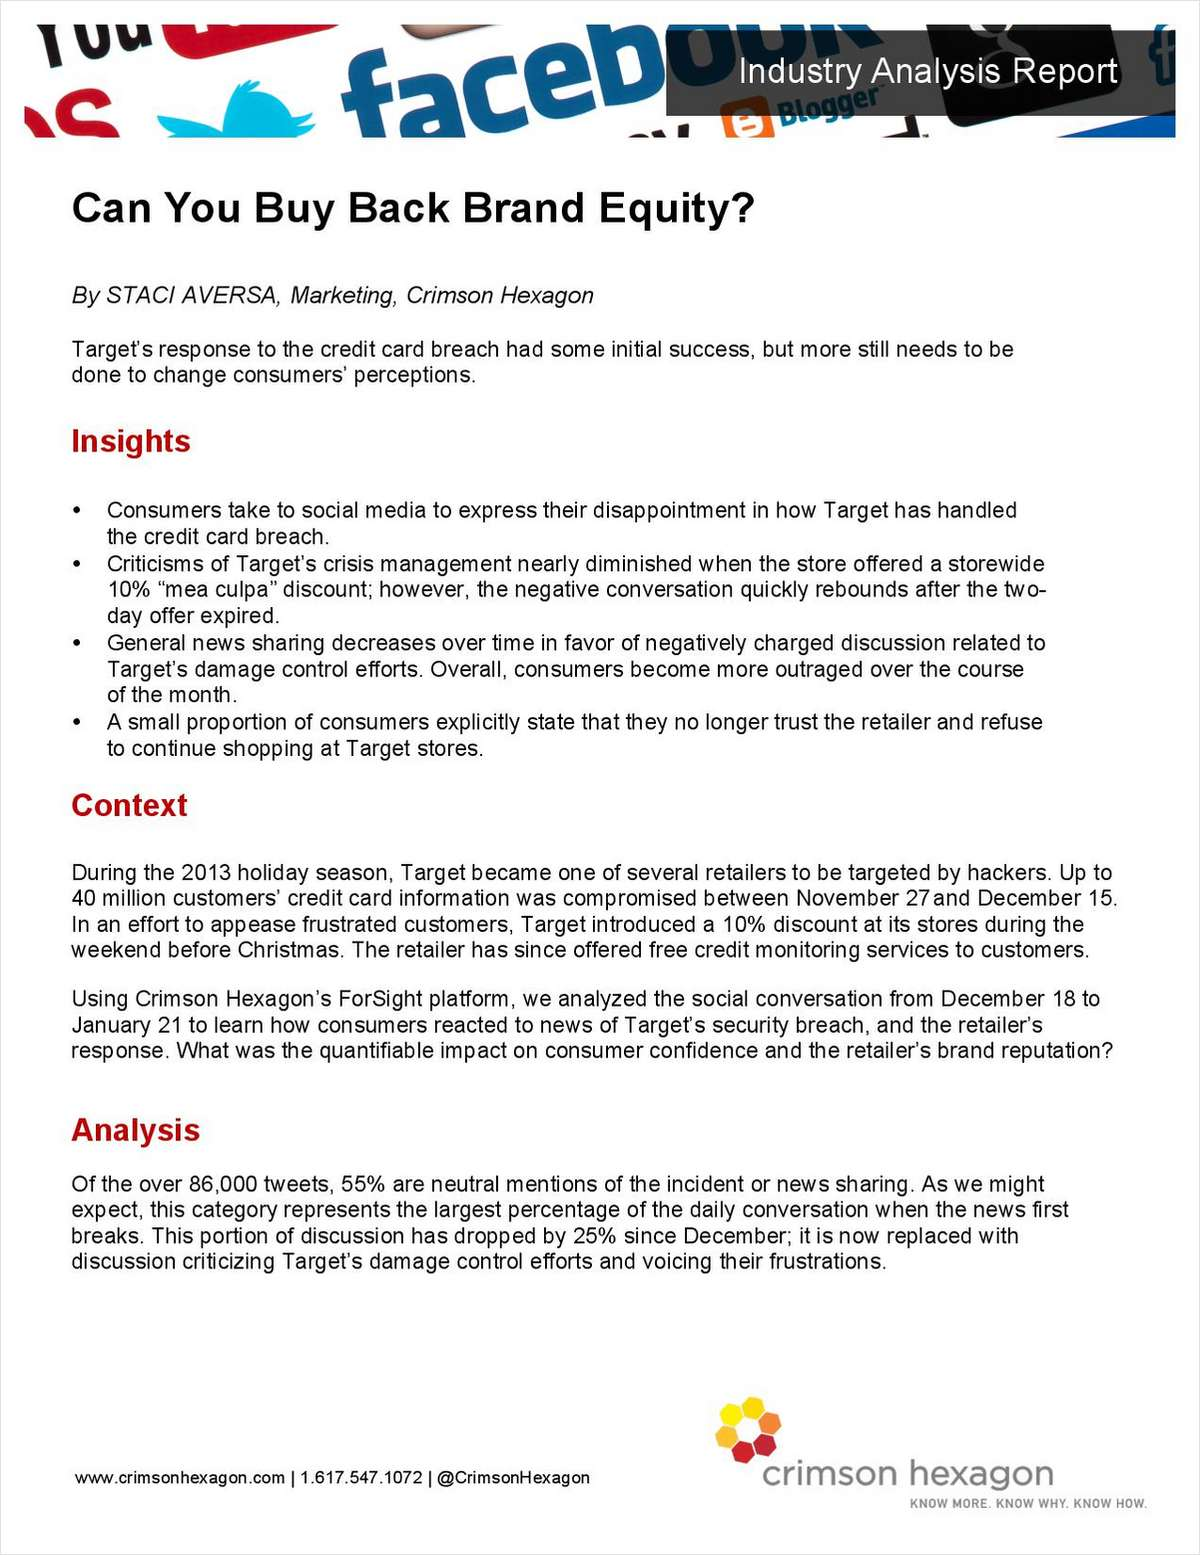 Can You Buy Back Brand Equity?